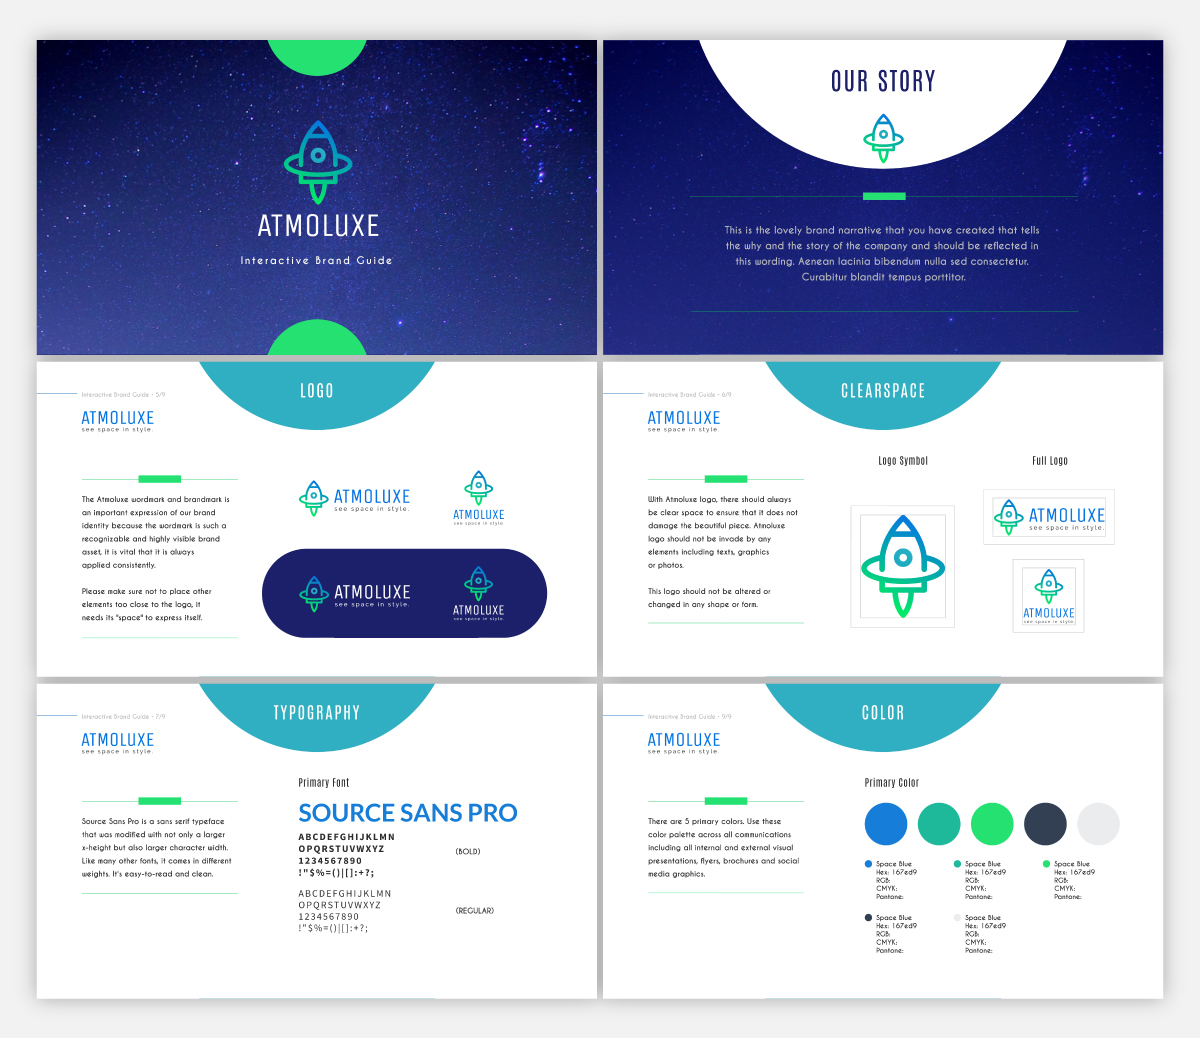 A brand guidelines presentation template available in Visme.